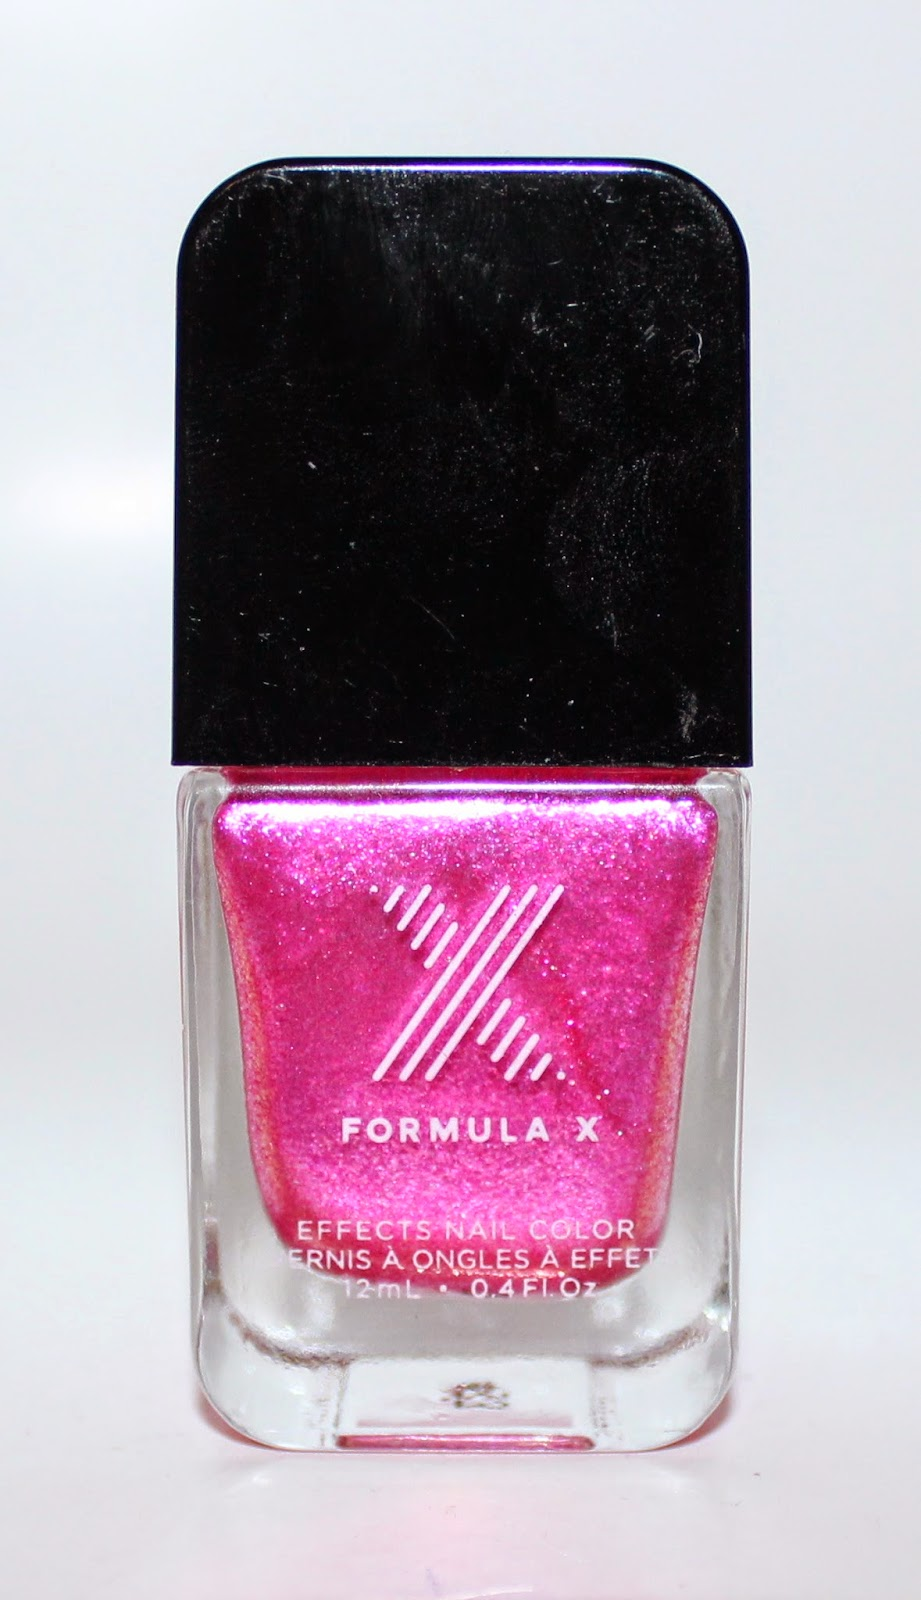 Sephora Formula X Liquid Crystals in Wavelength